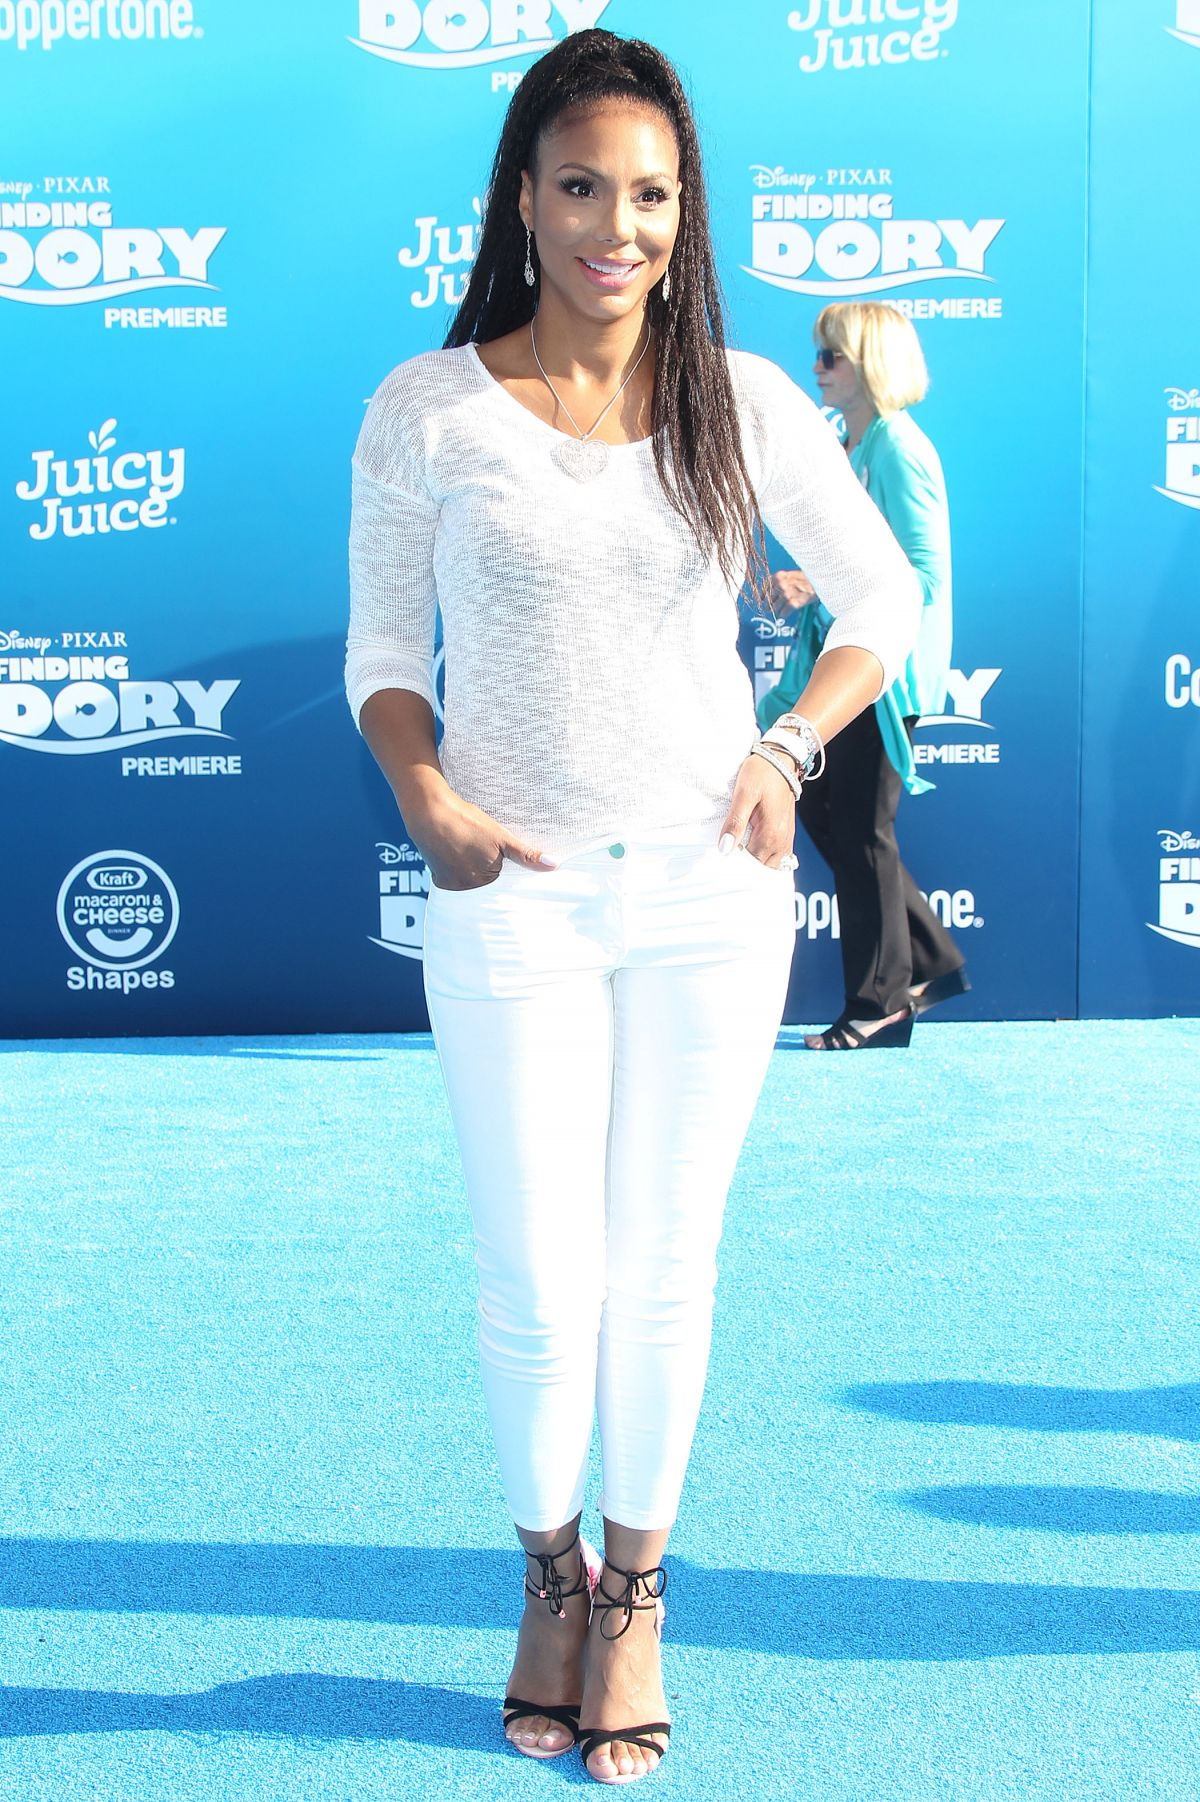 """TAMAR BRAXTON at """"Finding Dory' Premiere in Los Angeles 06/08/2016"""